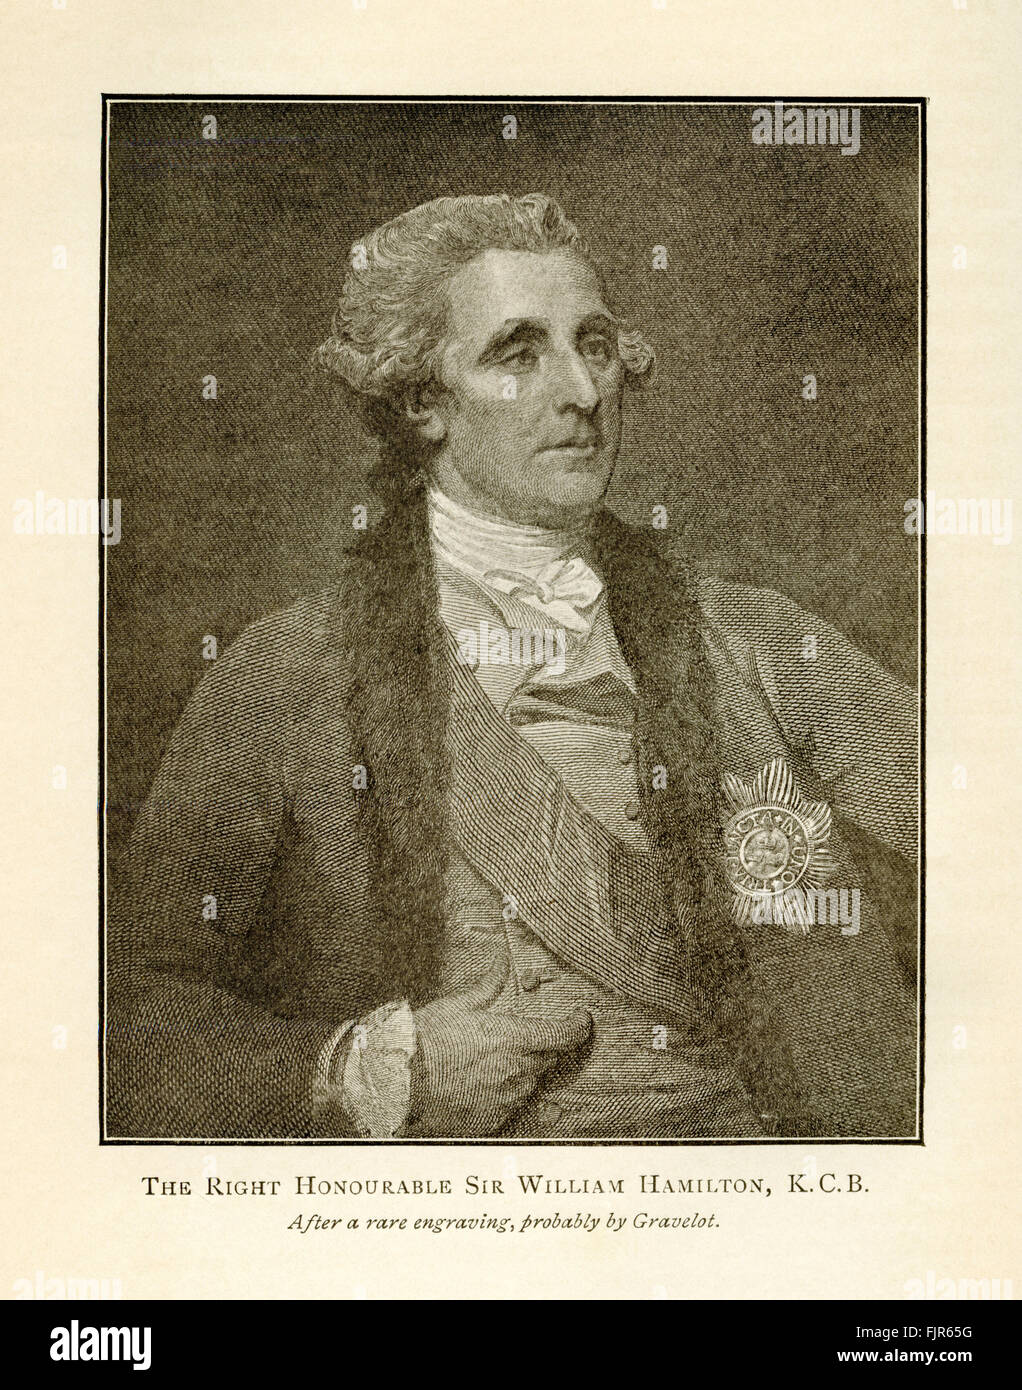 Le Très Honorable Sir William Hamilton, K.C.B., à partir d'une gravure probablement par Hubert-François Photo Stock